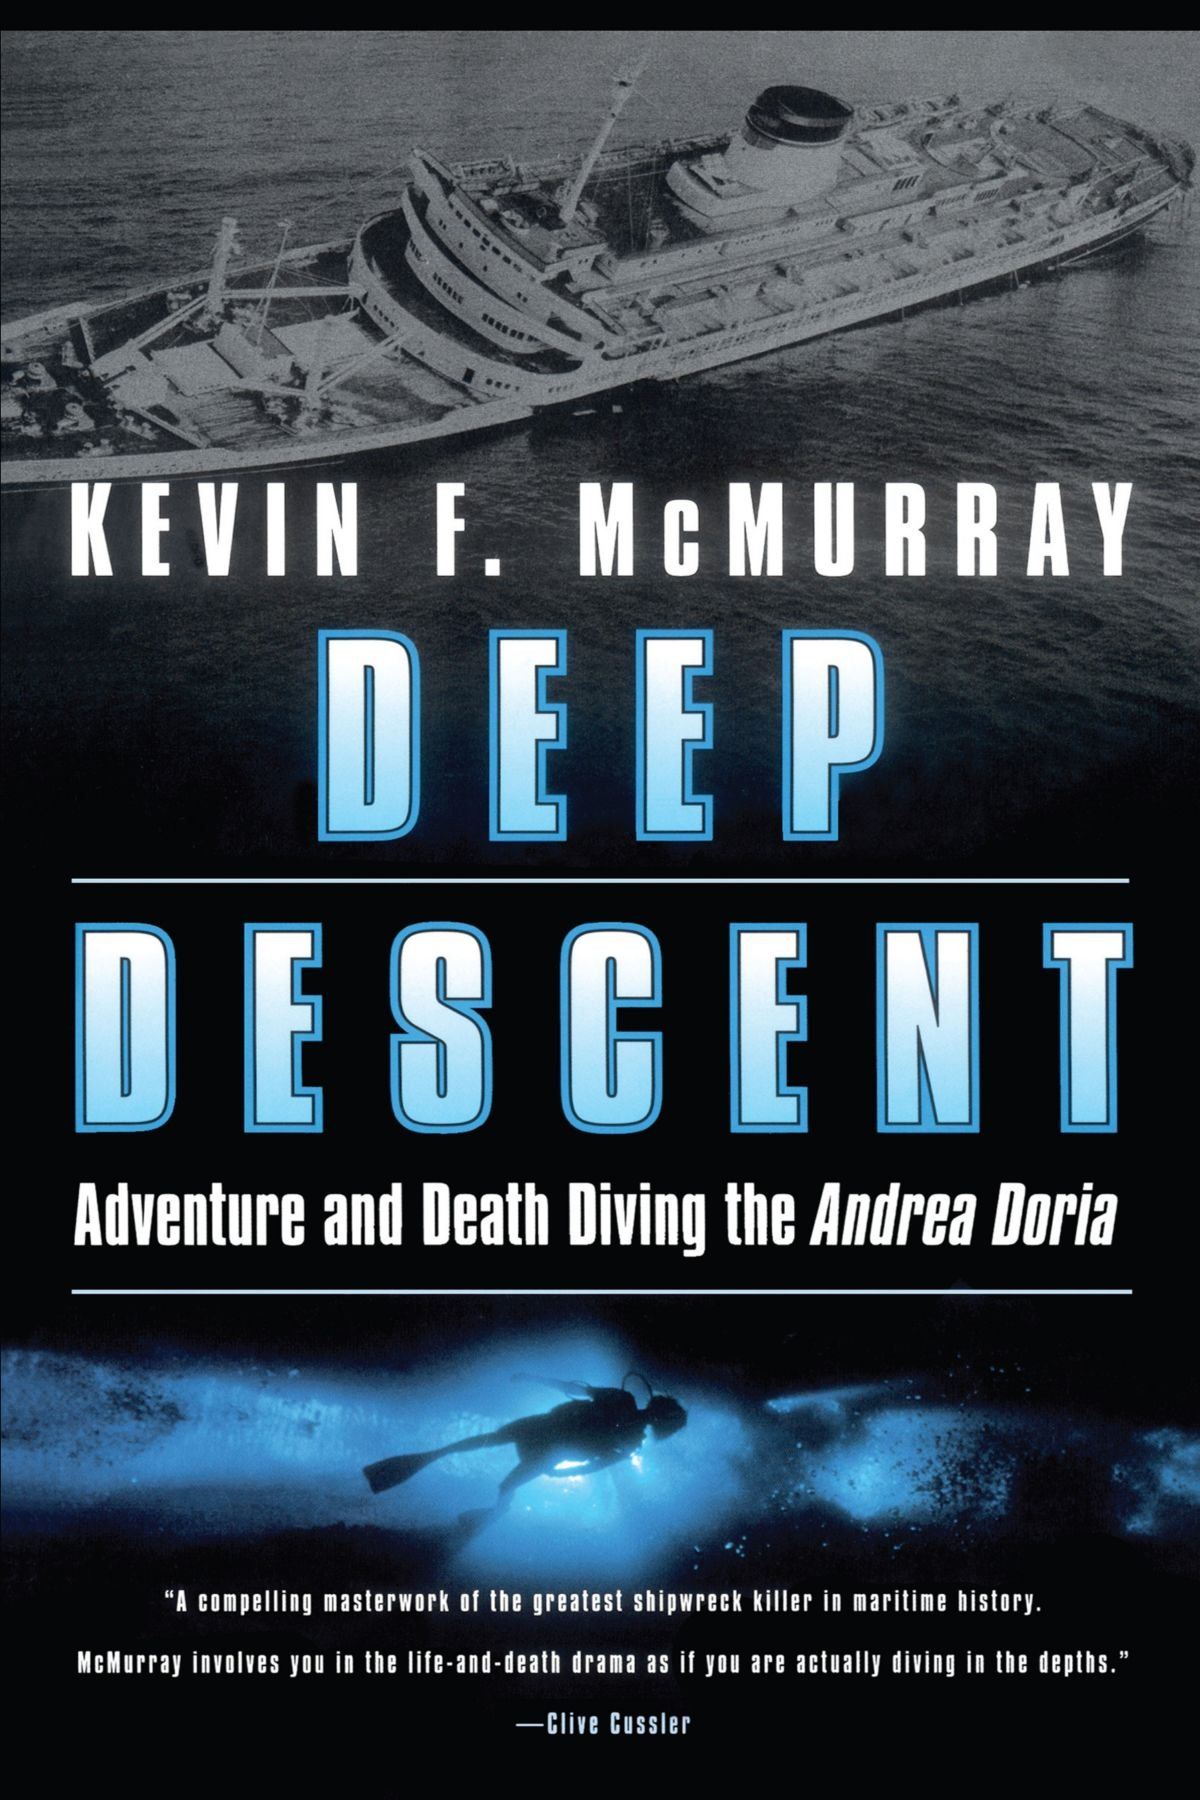 Deep Descent: Adventure and Death Diving the Andrea Doria: Adventure and Death: The Andrea Doria por Kevin F. McMurray